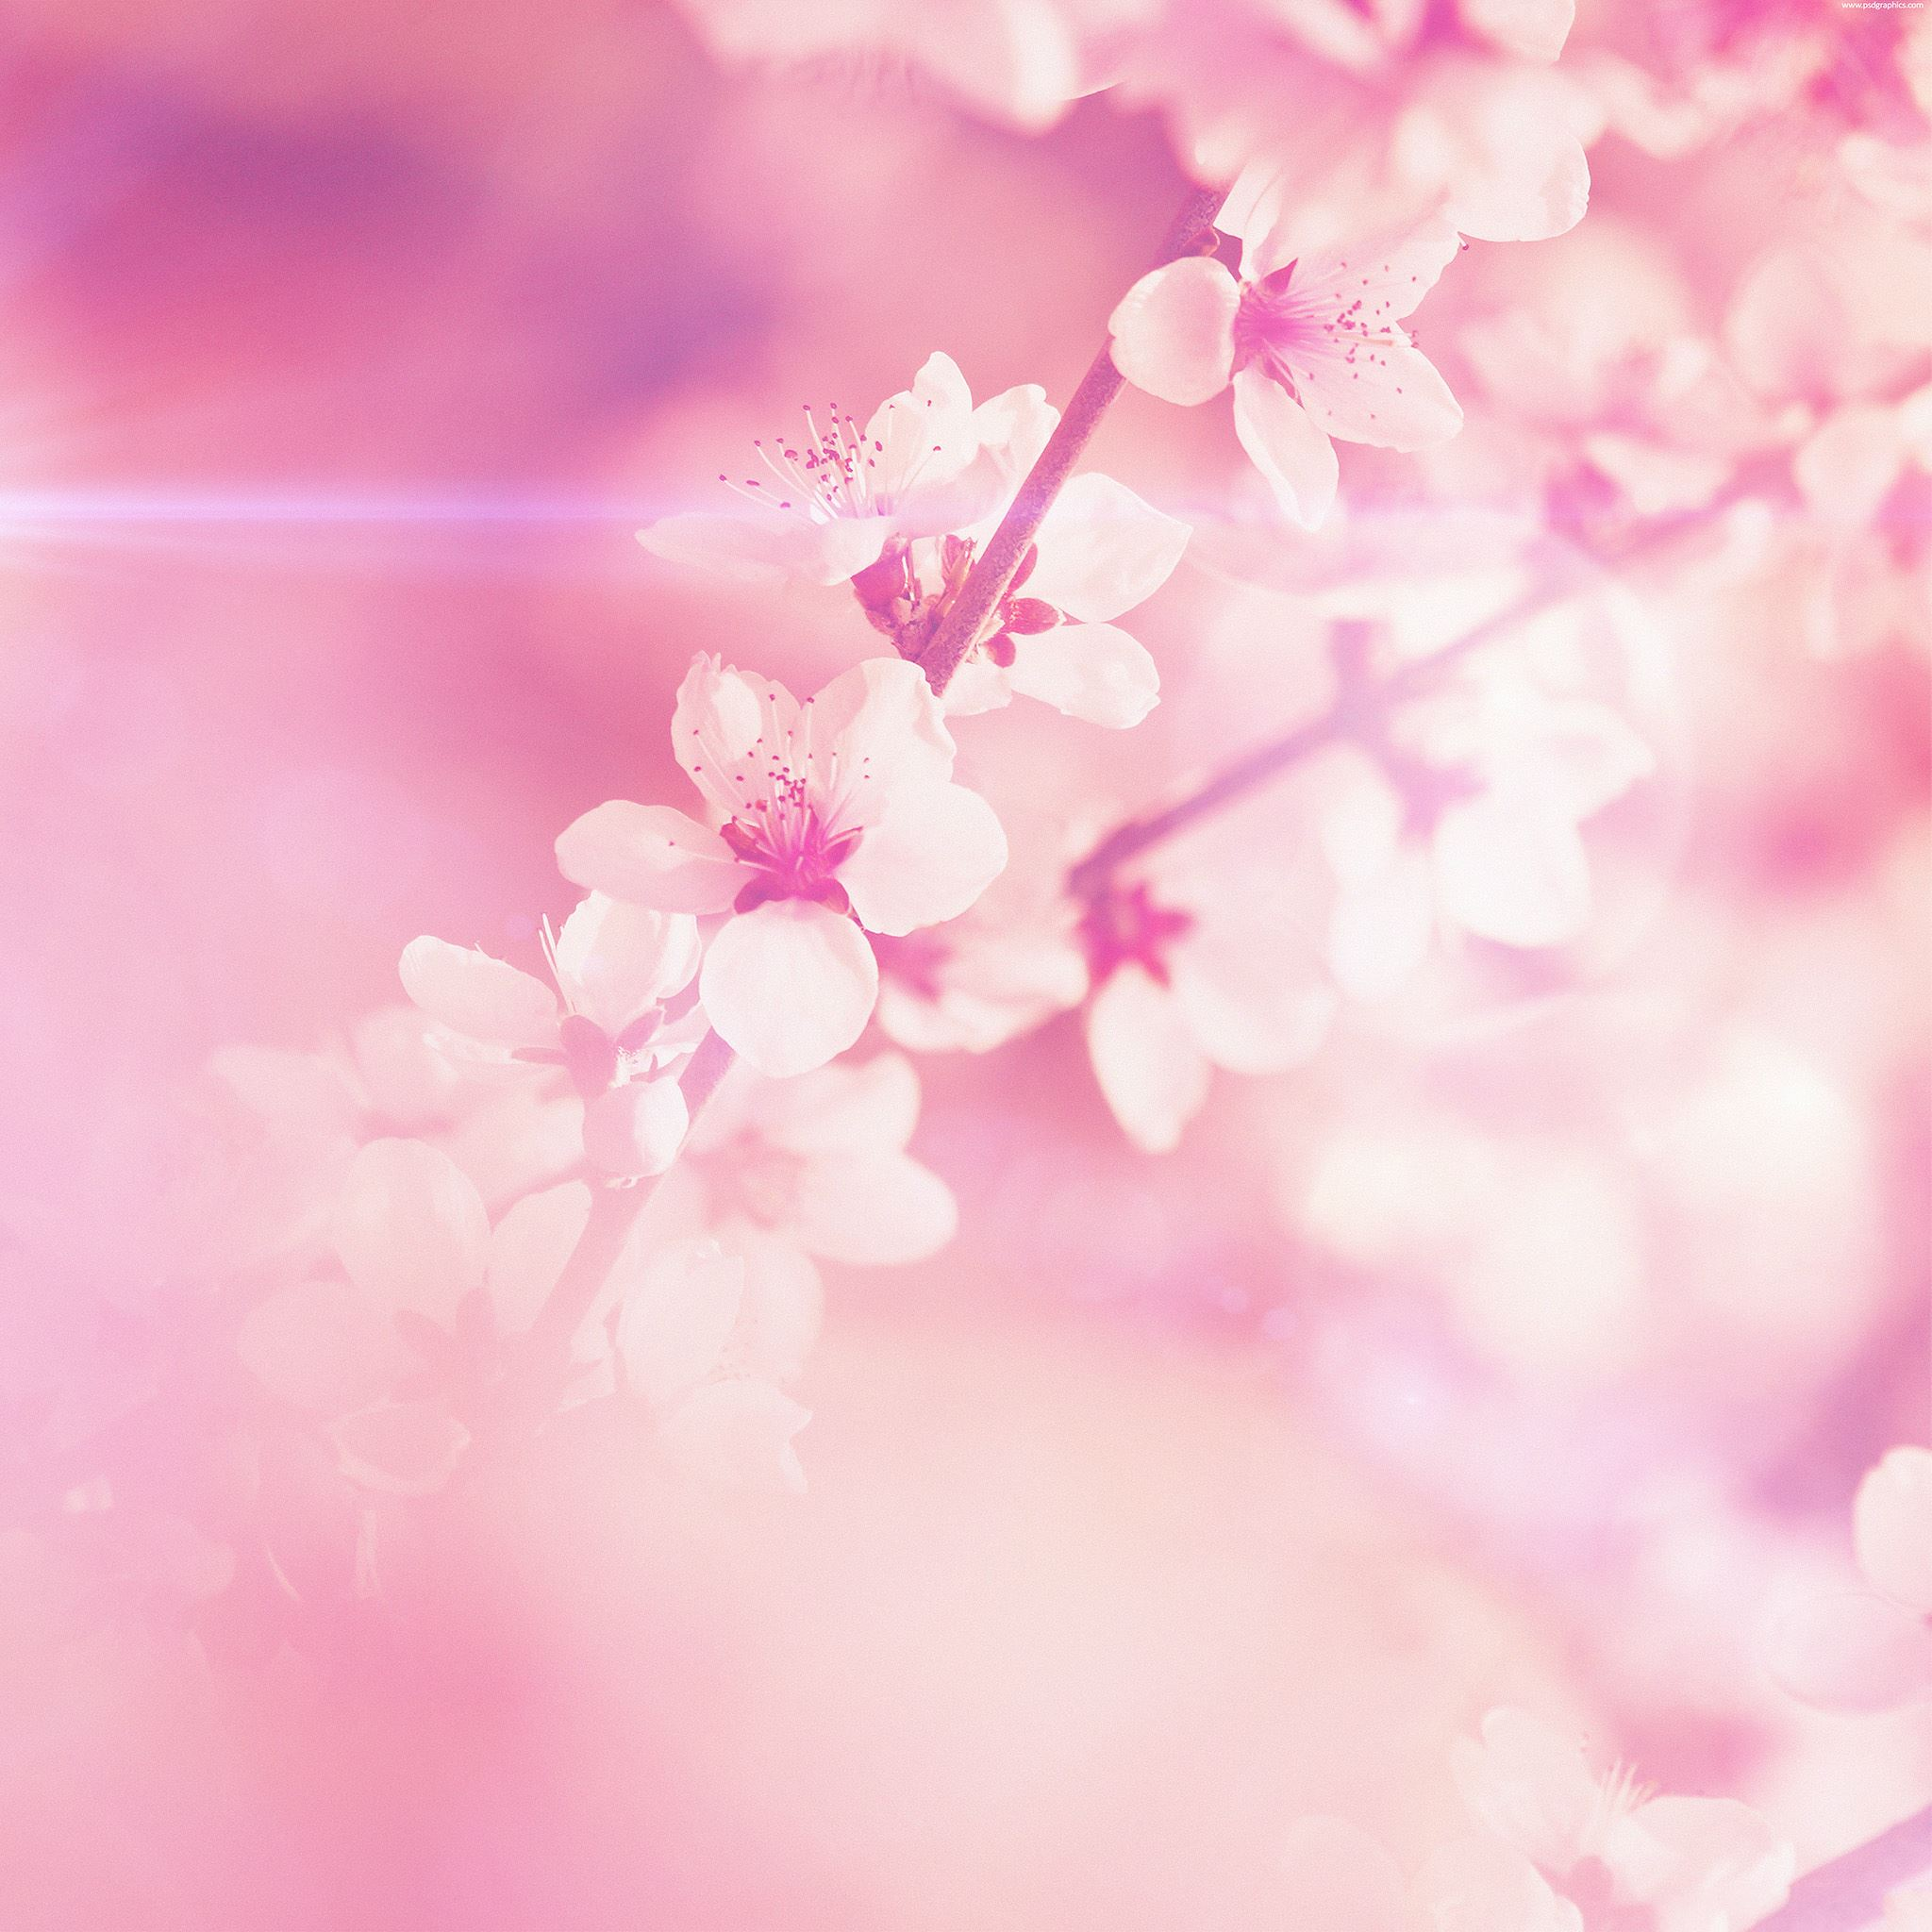 Iphone Wallpaper Pink: Spring Pink Cherry Blossom Flare Nature IPad Air Wallpaper